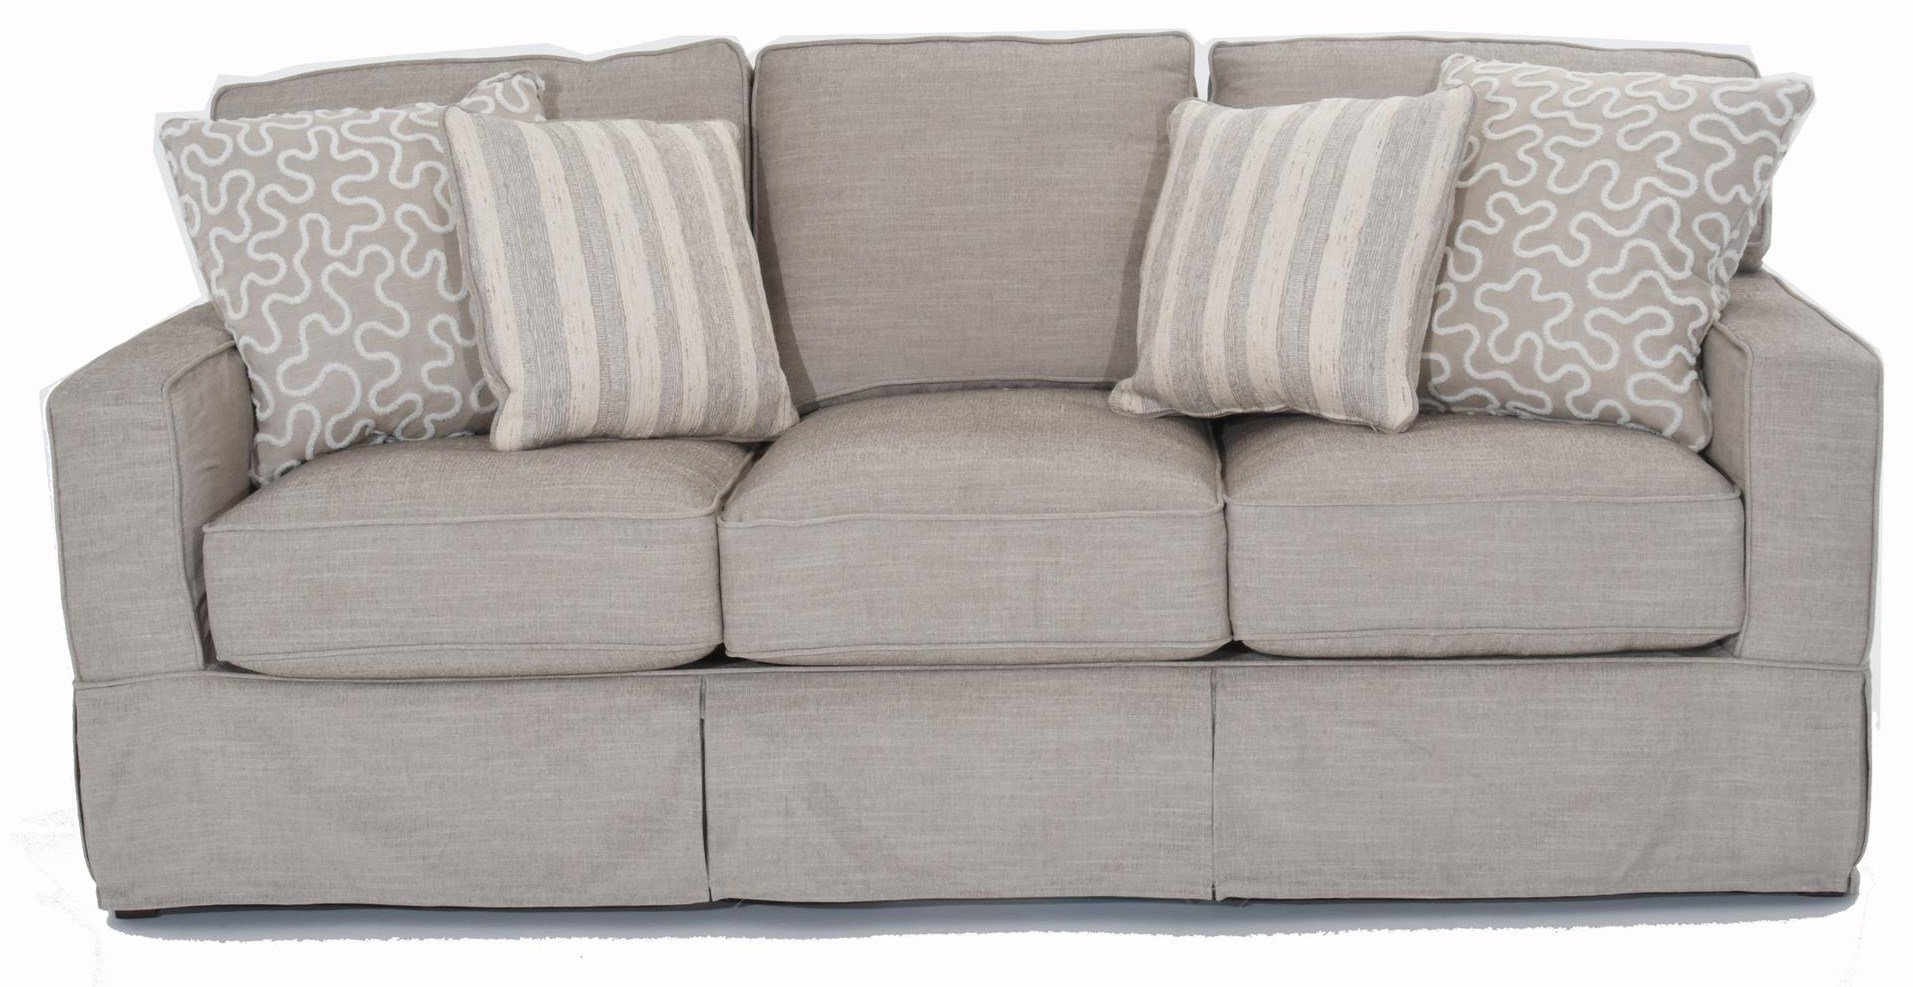 Coastal Living Home - Escape Chatham Sofa by Universal at Baer's Furniture